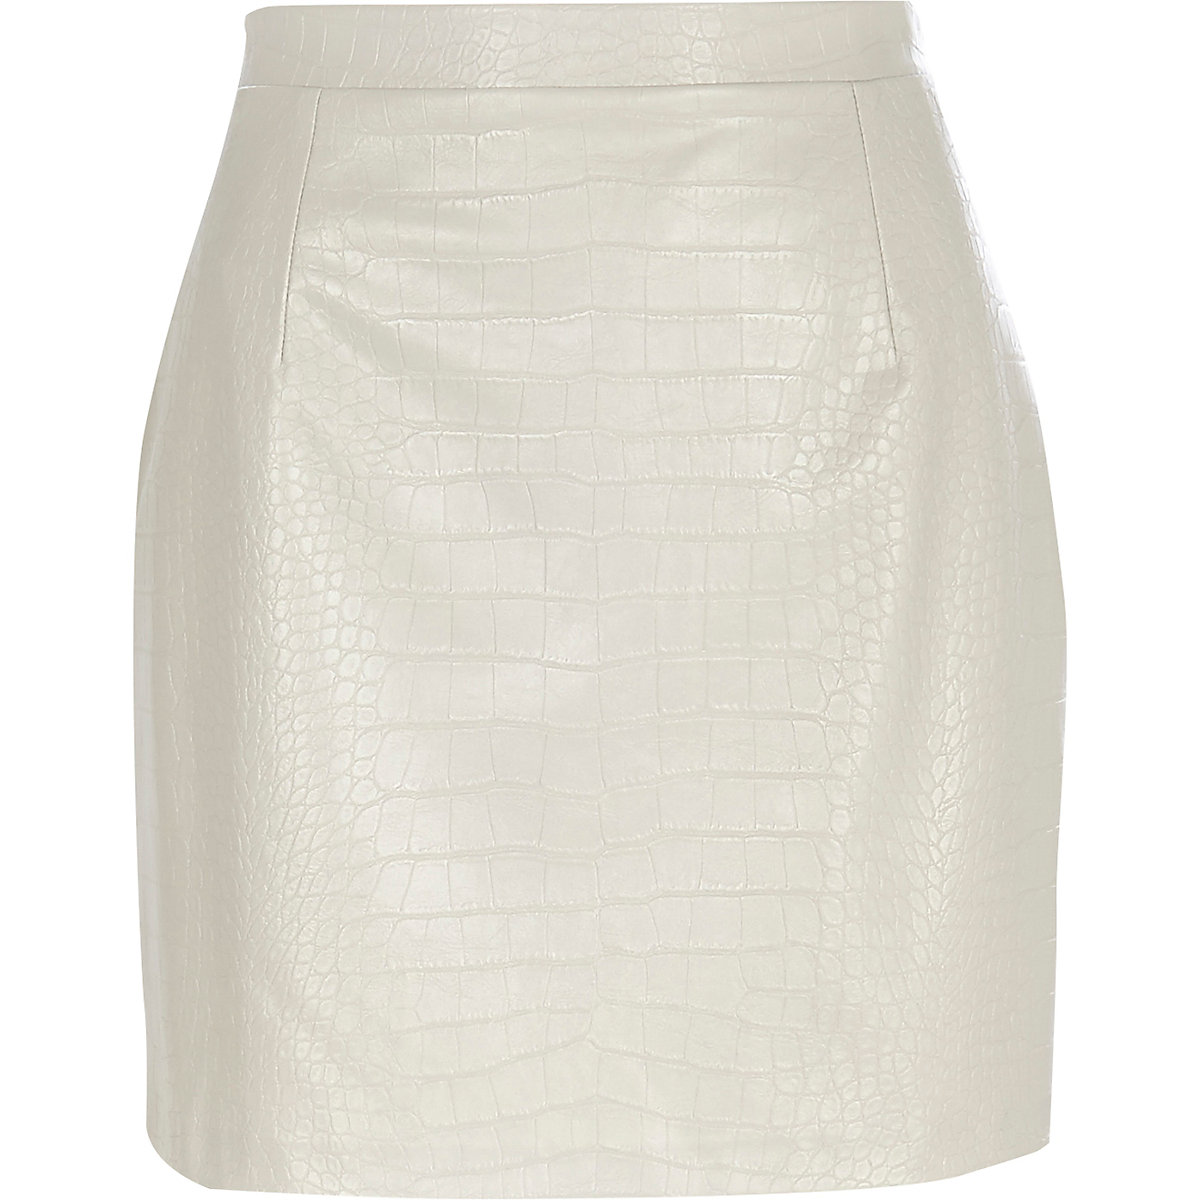 Grey mock croc leather-look mini skirt